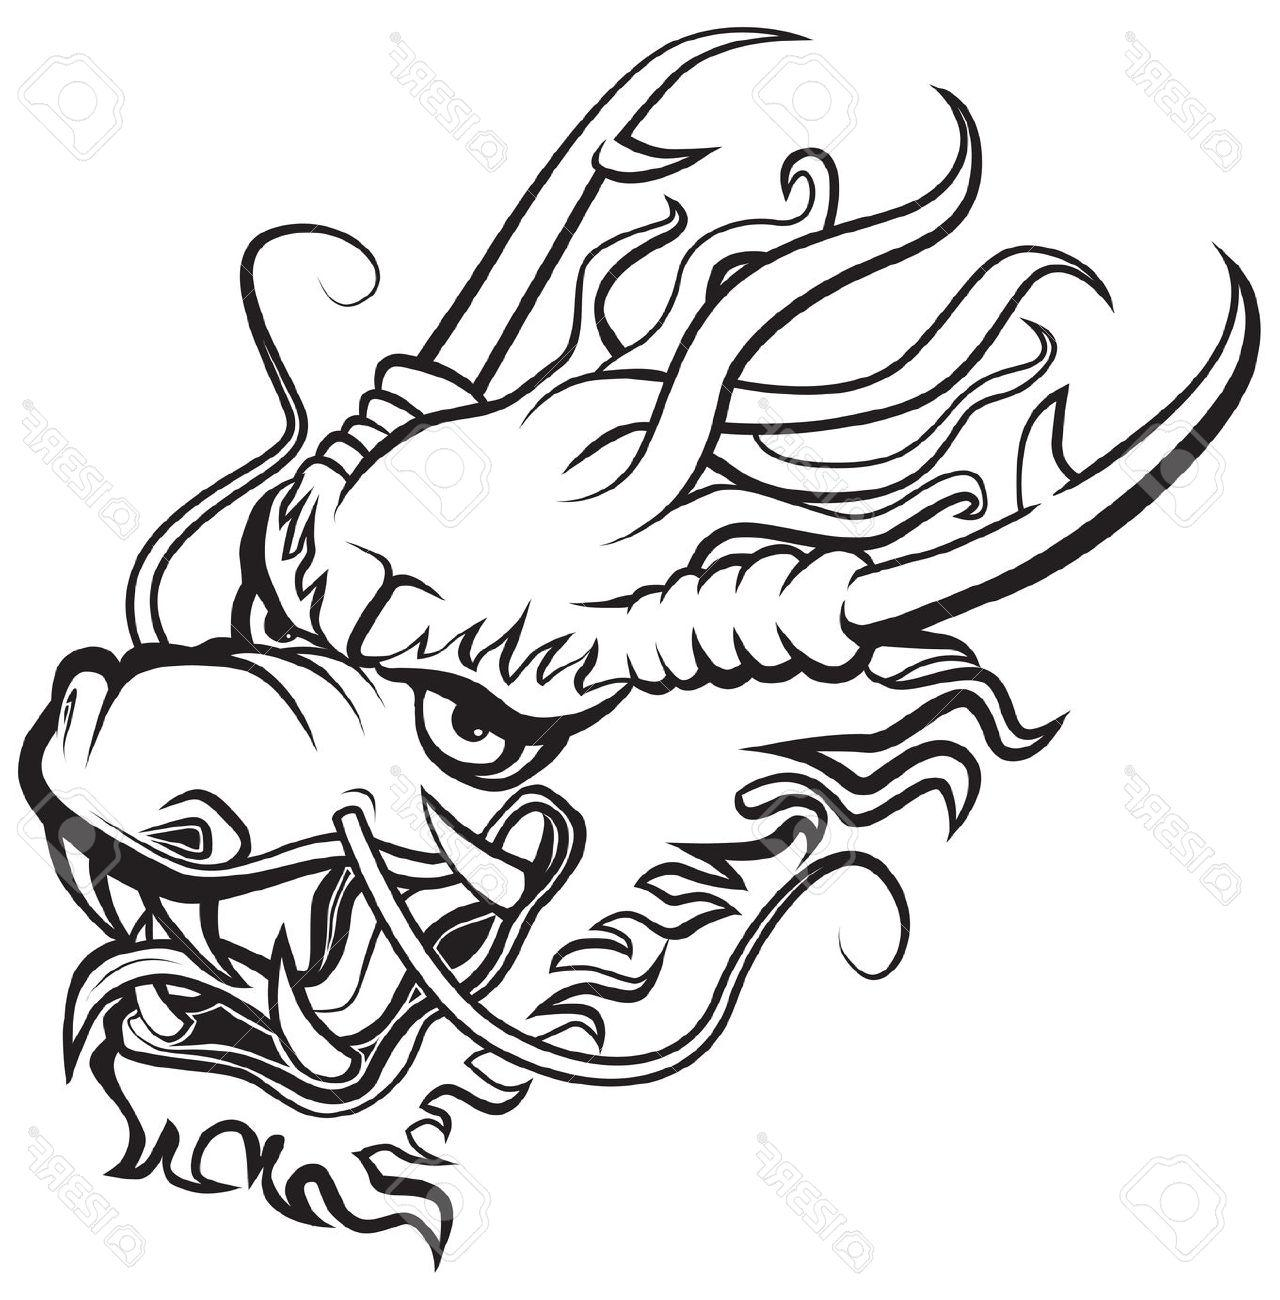 1280x1300 Unique Japanese Dragon Head Outline Vector Design Free Vector